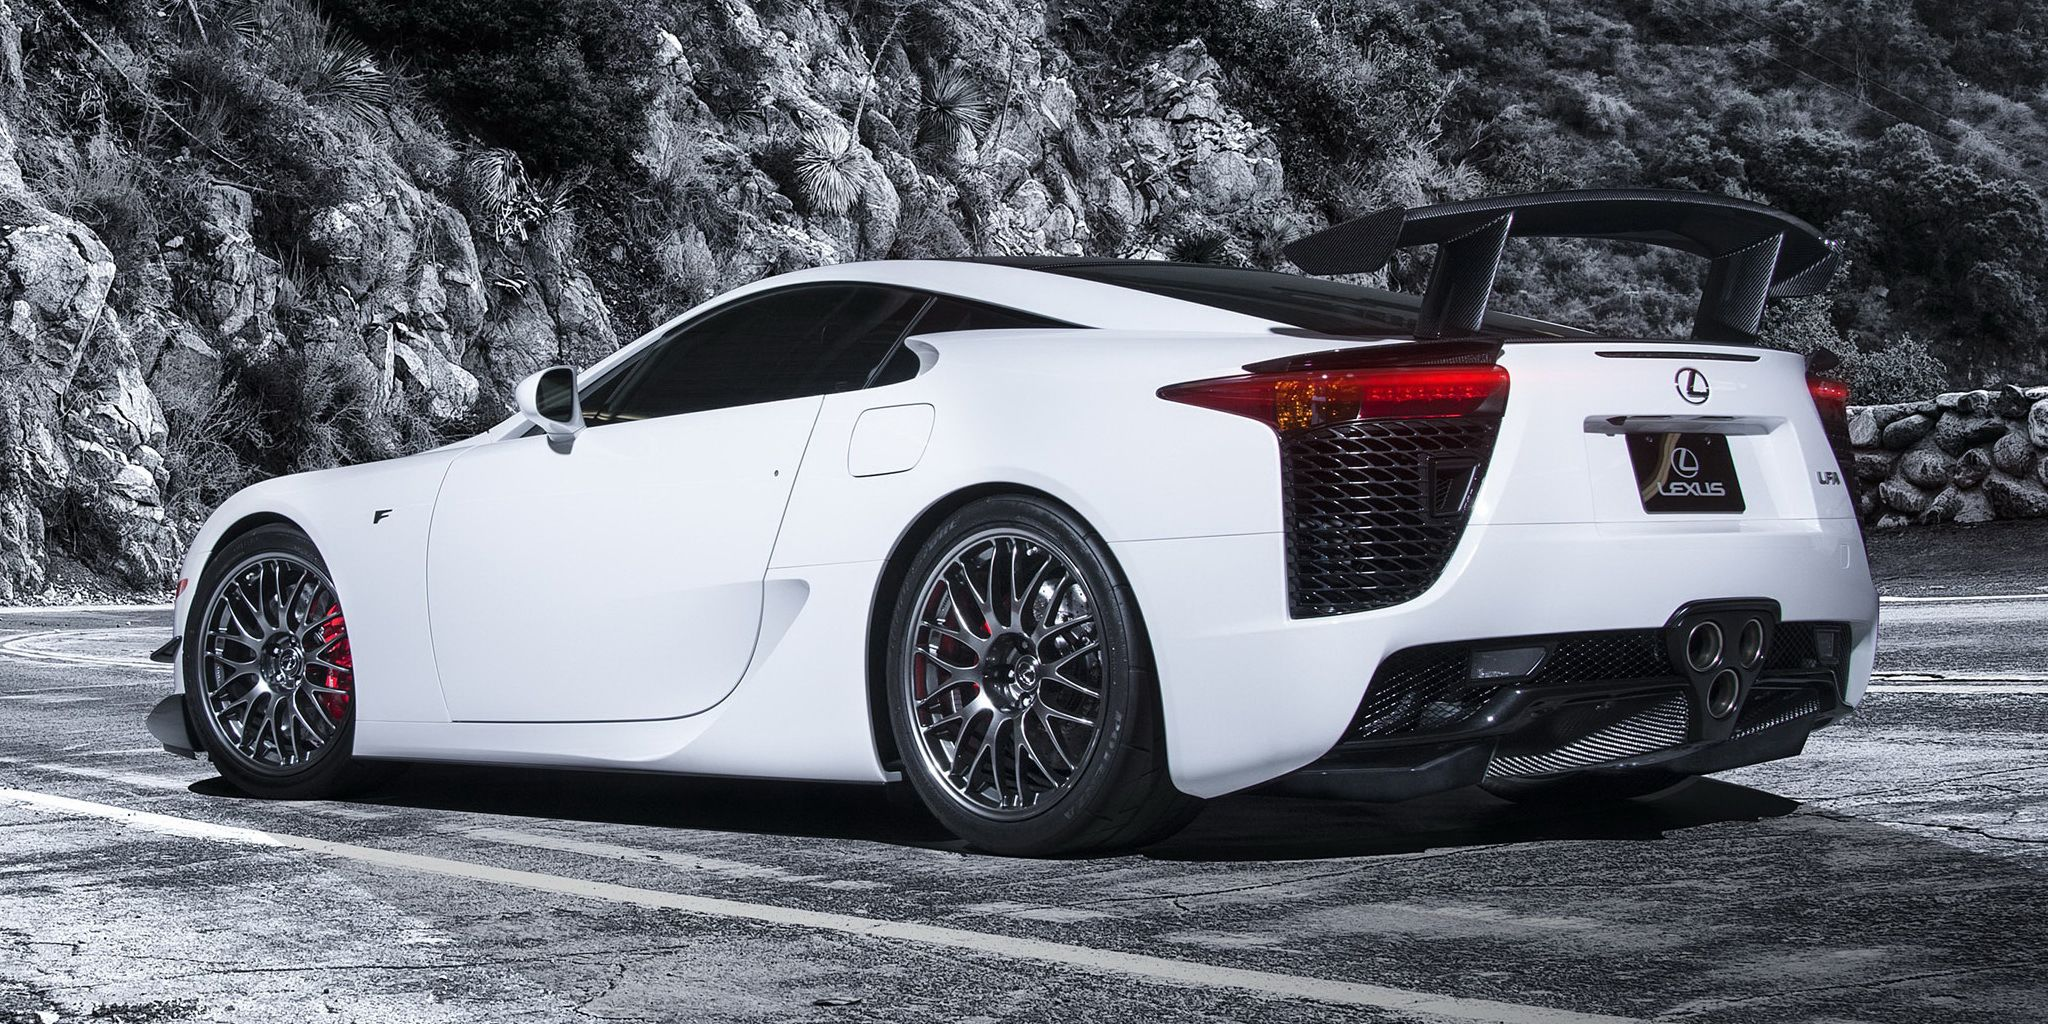 new, 800hp lexus lfa will debut at 2019 tokyo motor show, says